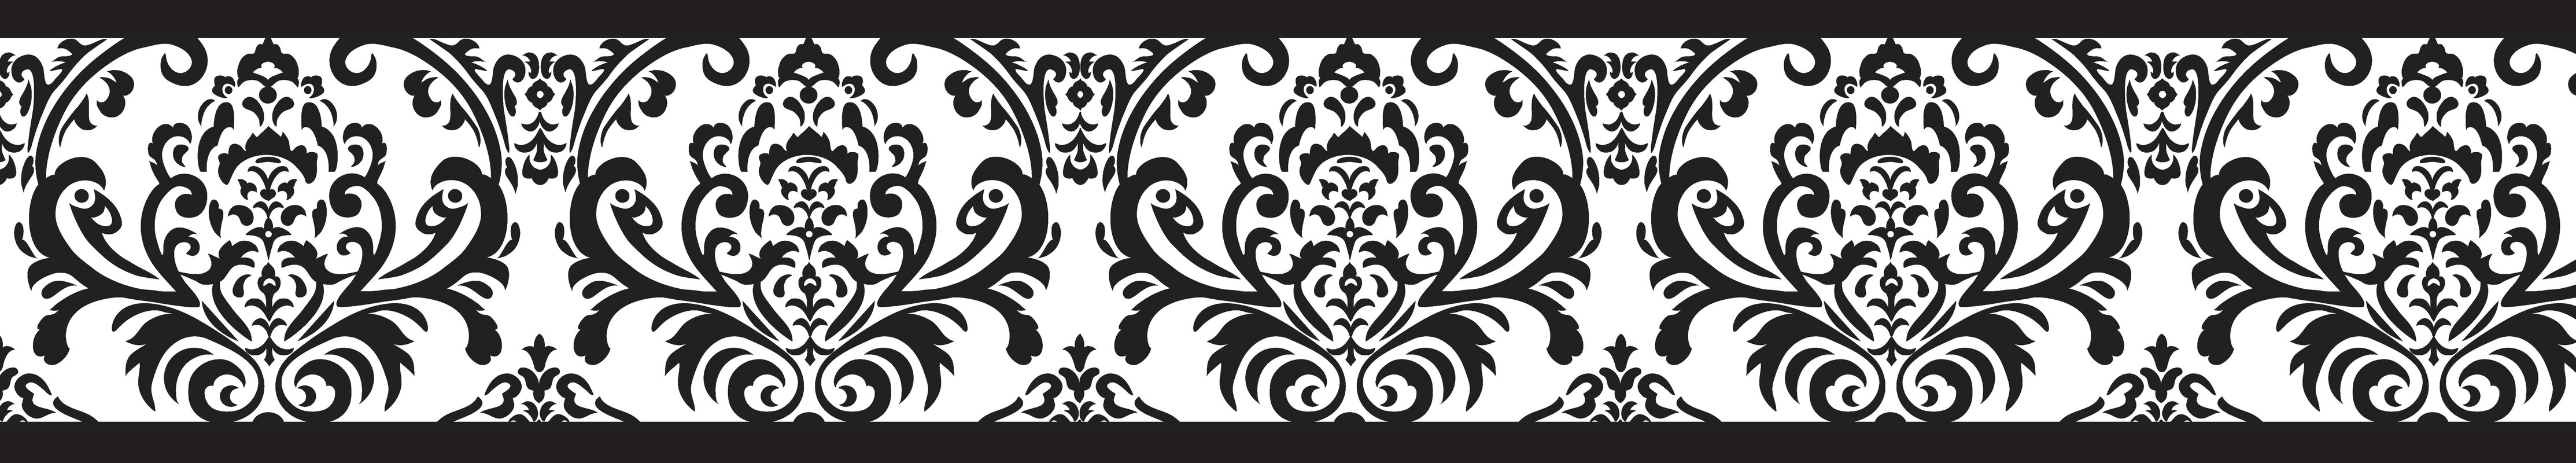 sweet jojo designs isabella 15 x 6quot damask border